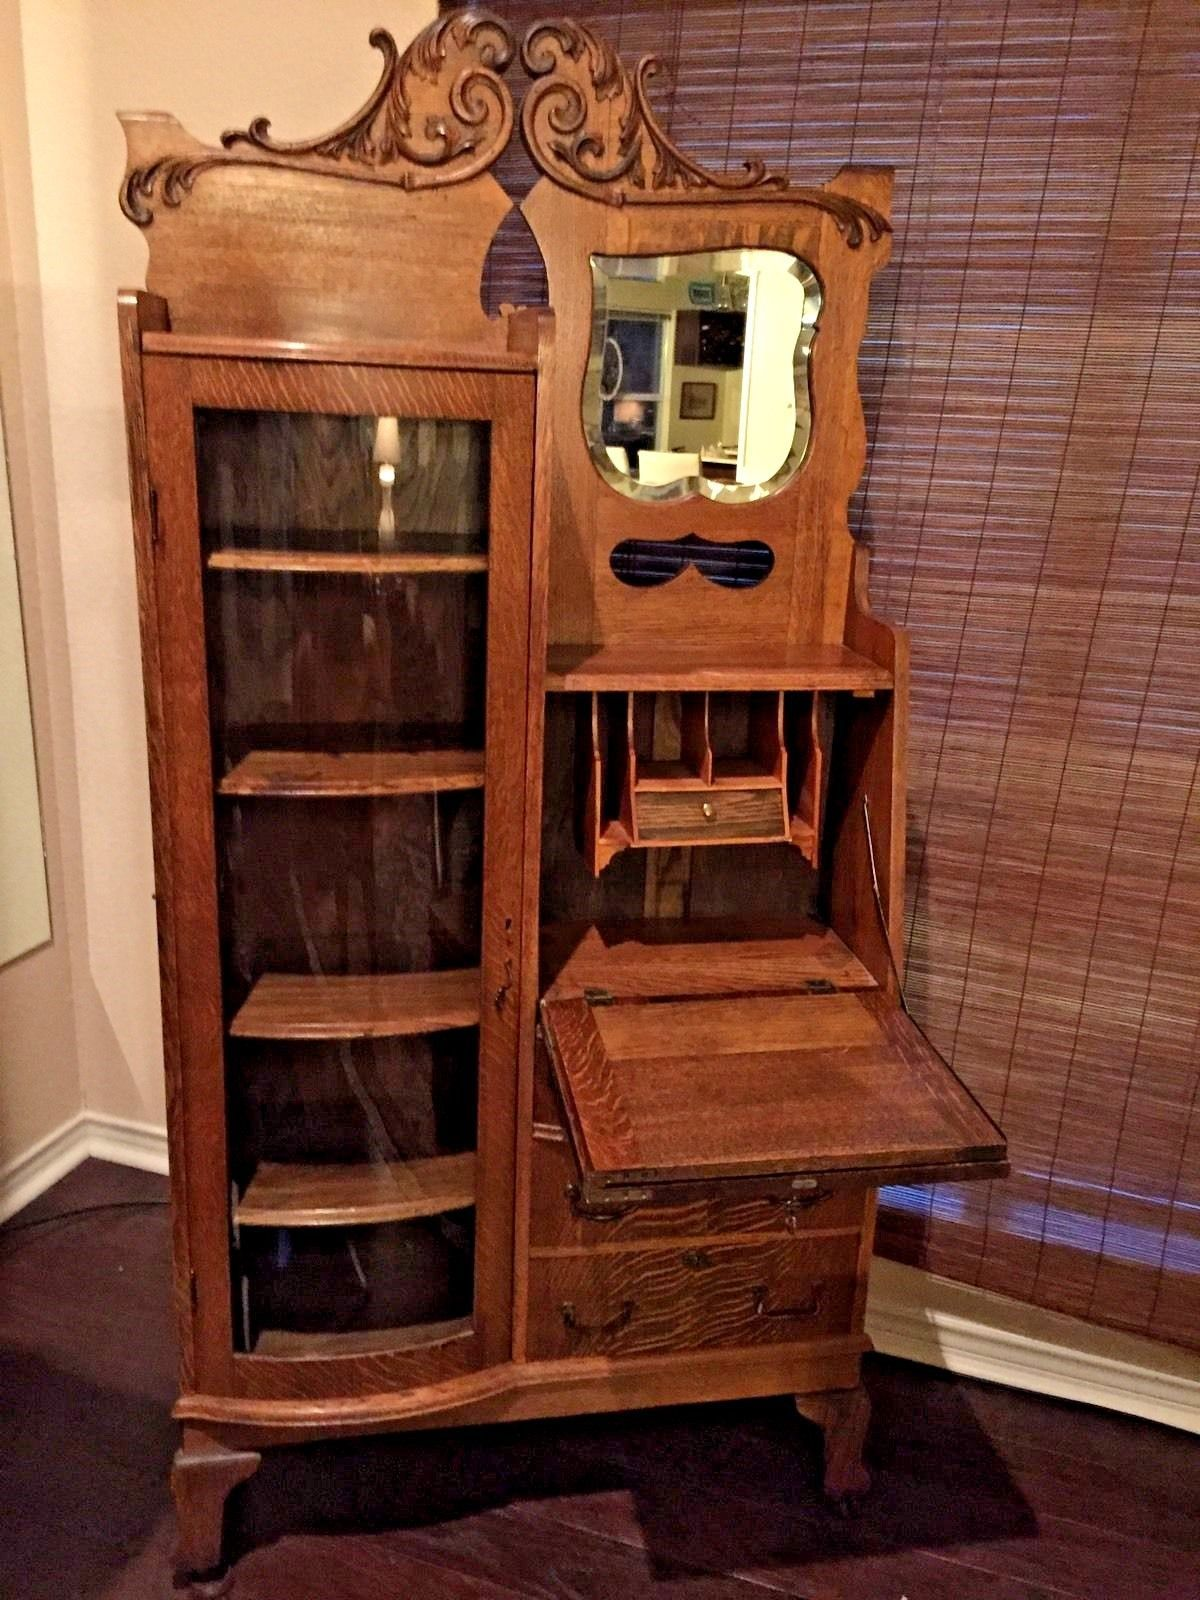 Antique Combination Oak Bookcase & Secretary Desk Circa 1900's - Antique Combination Oak Bookcase & Secretary Desk Circa 1900's